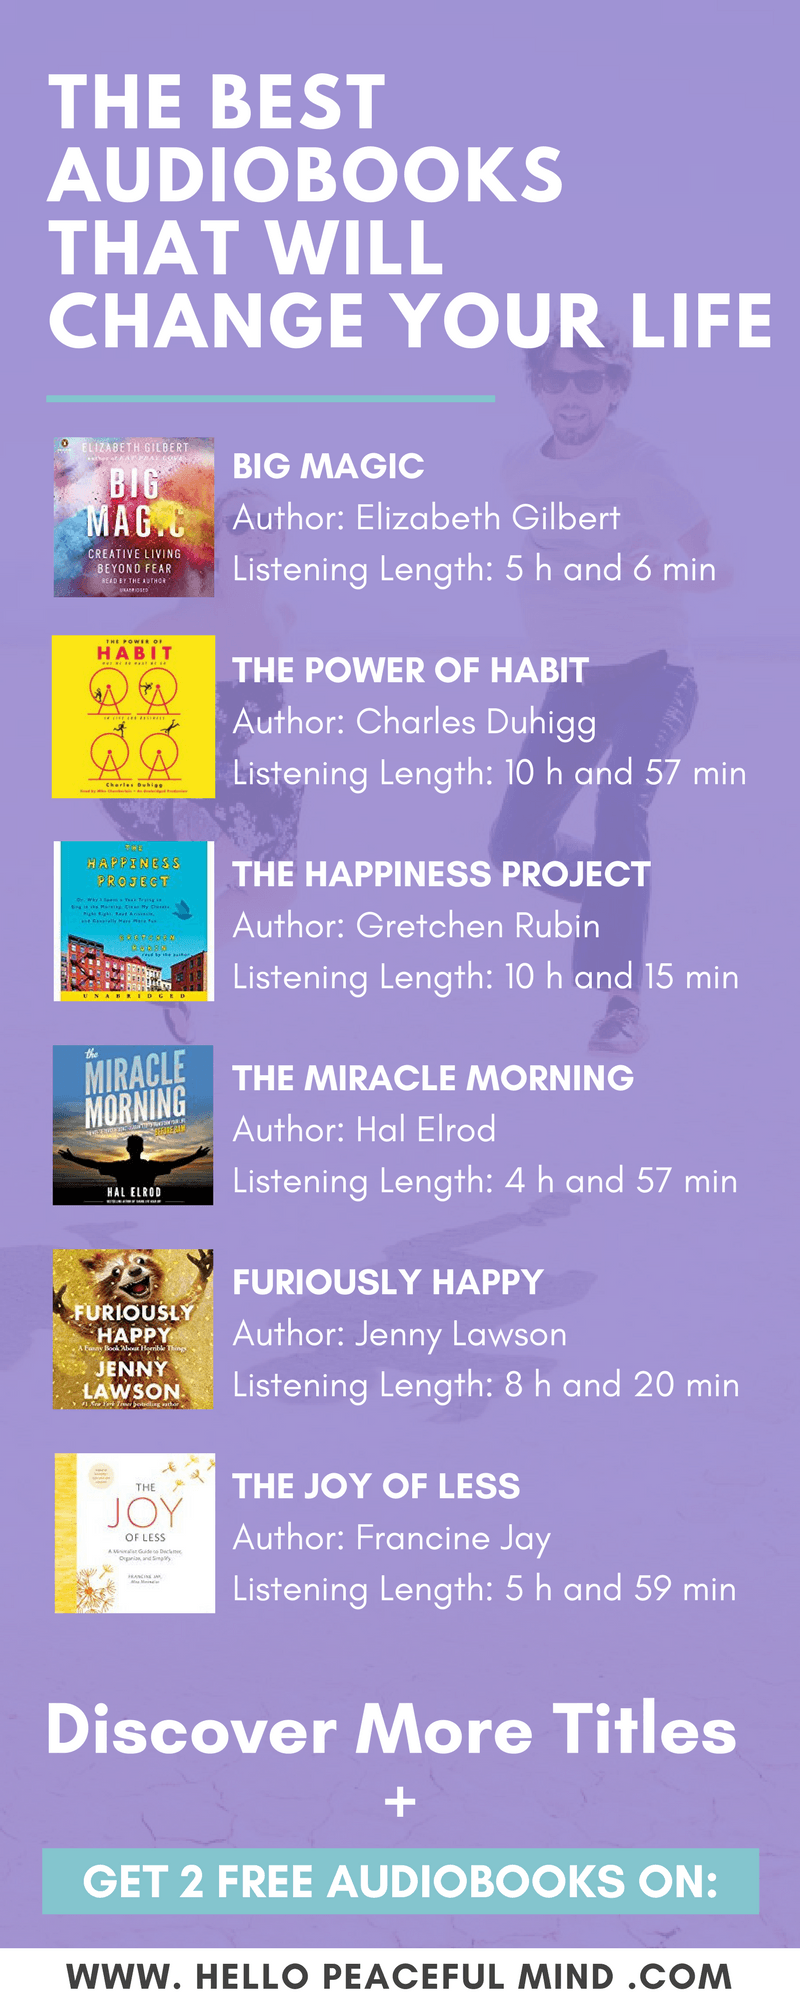 The Best Audiobooks That Will Change Your Life is part of Inspirational books, Personal development books, Best audiobooks, Self help books, Good books, Audible books - Discover the best audiobooks for selfhelp, creating a happy home, healthy living and relationships  Plus, get 2 free audiobooks on Hello Peaceful Mind!